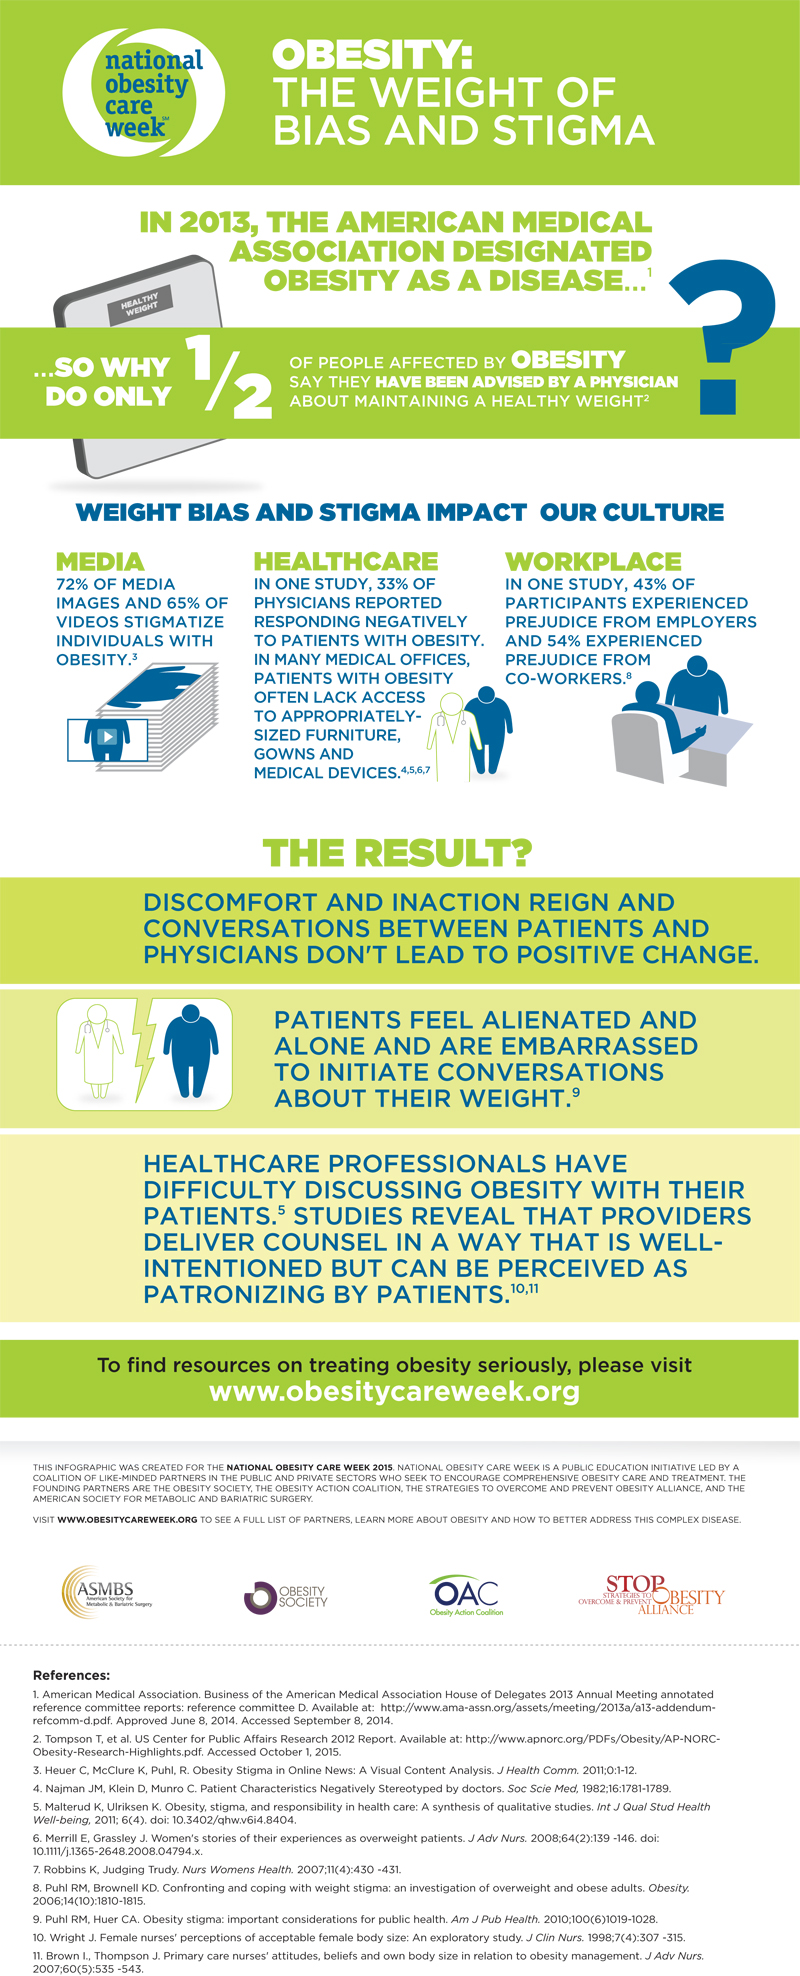 Obesity: The Weight of Bias and Stigma Infographic ...